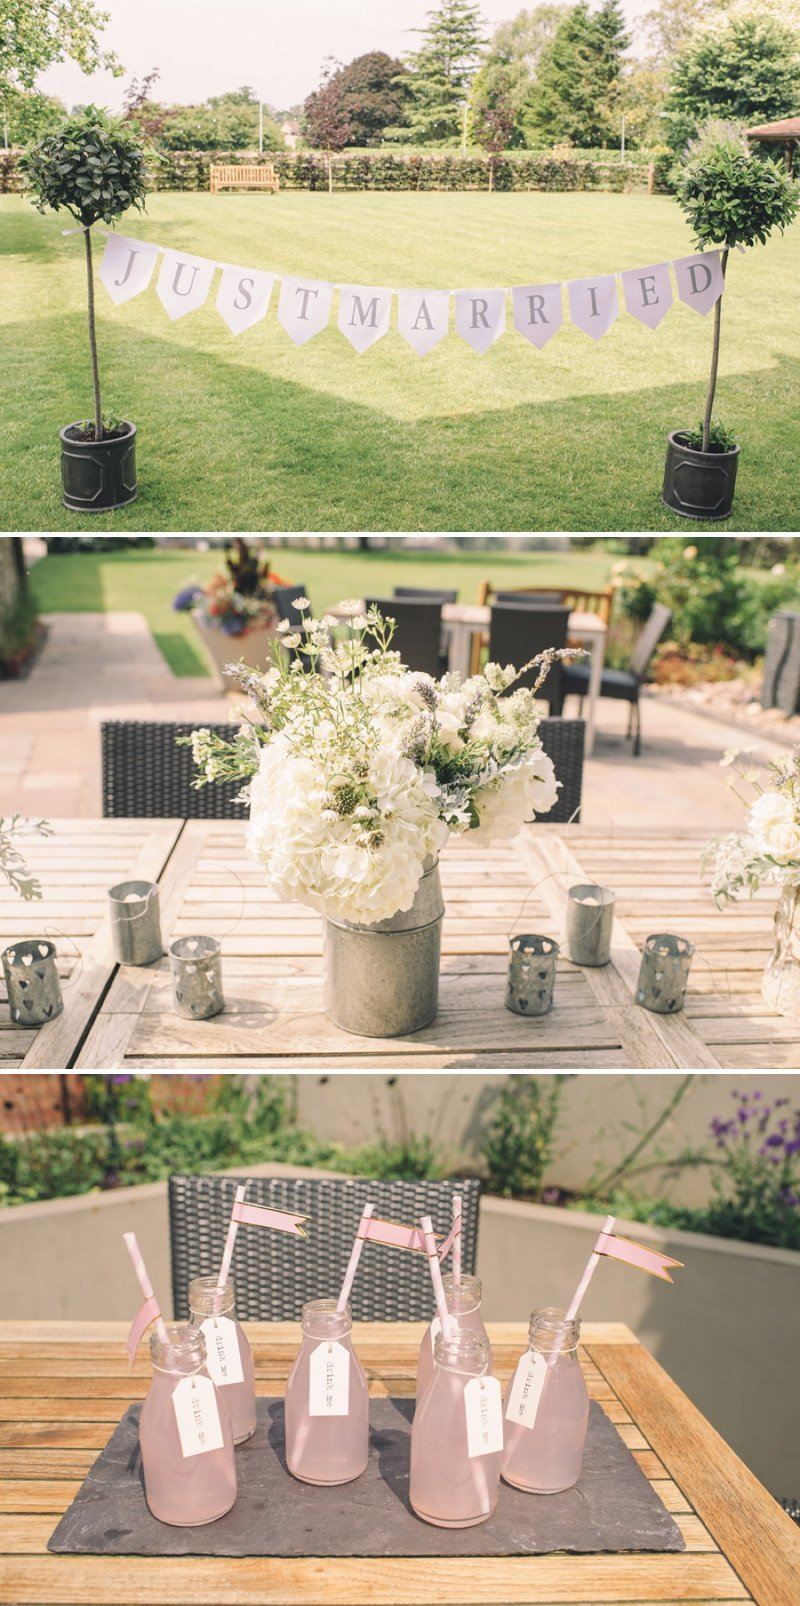 Rustic Table Decor for Wedding Lovely the Wedding My Dreams Rustic and Vintage Wedding Decorations to